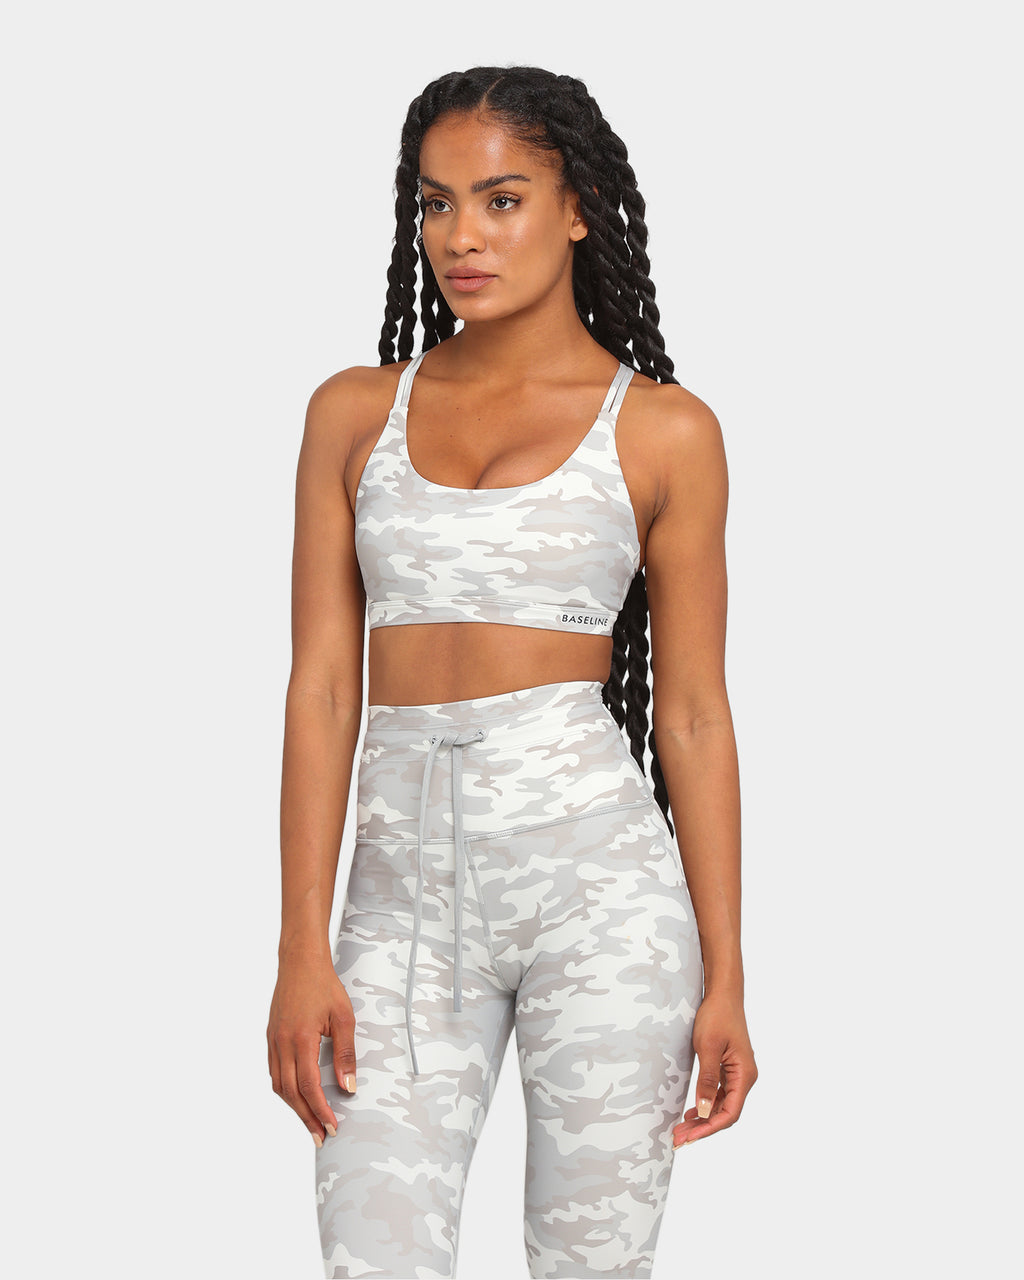 Baseline Dedication Sports Bra Dedication Print